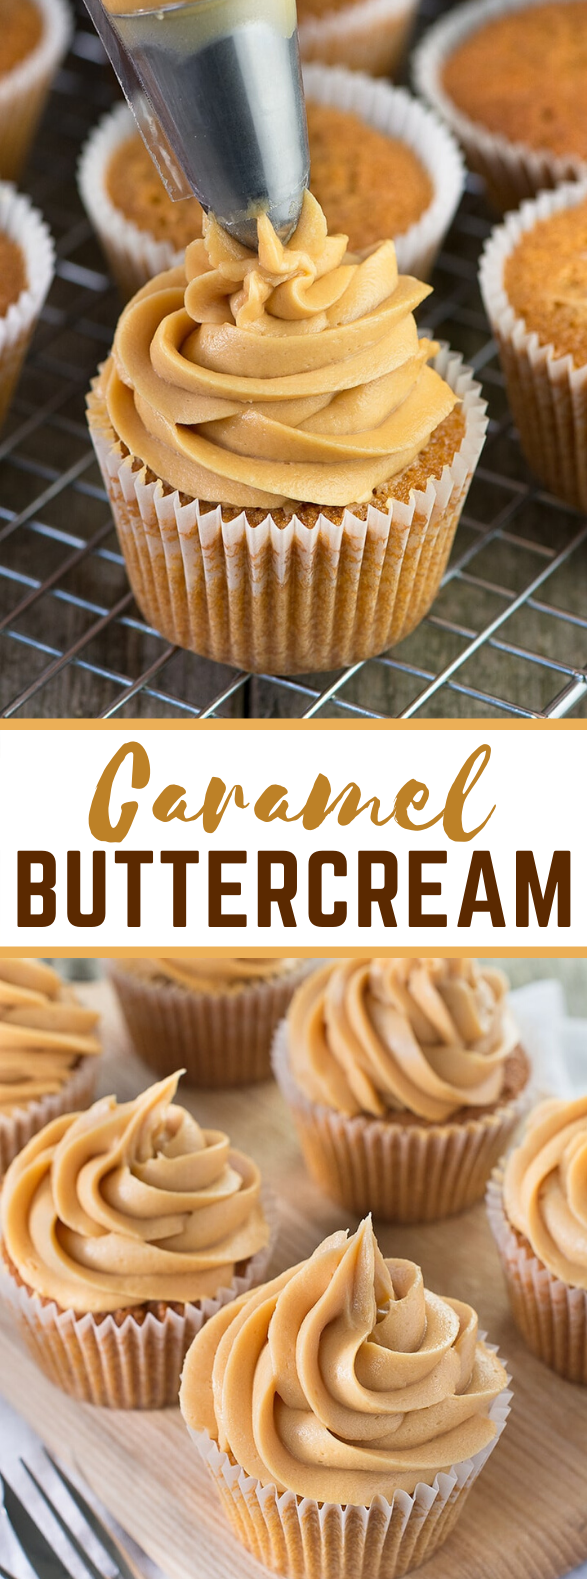 CARAMEL BUTTERCREAM #desserts #cream